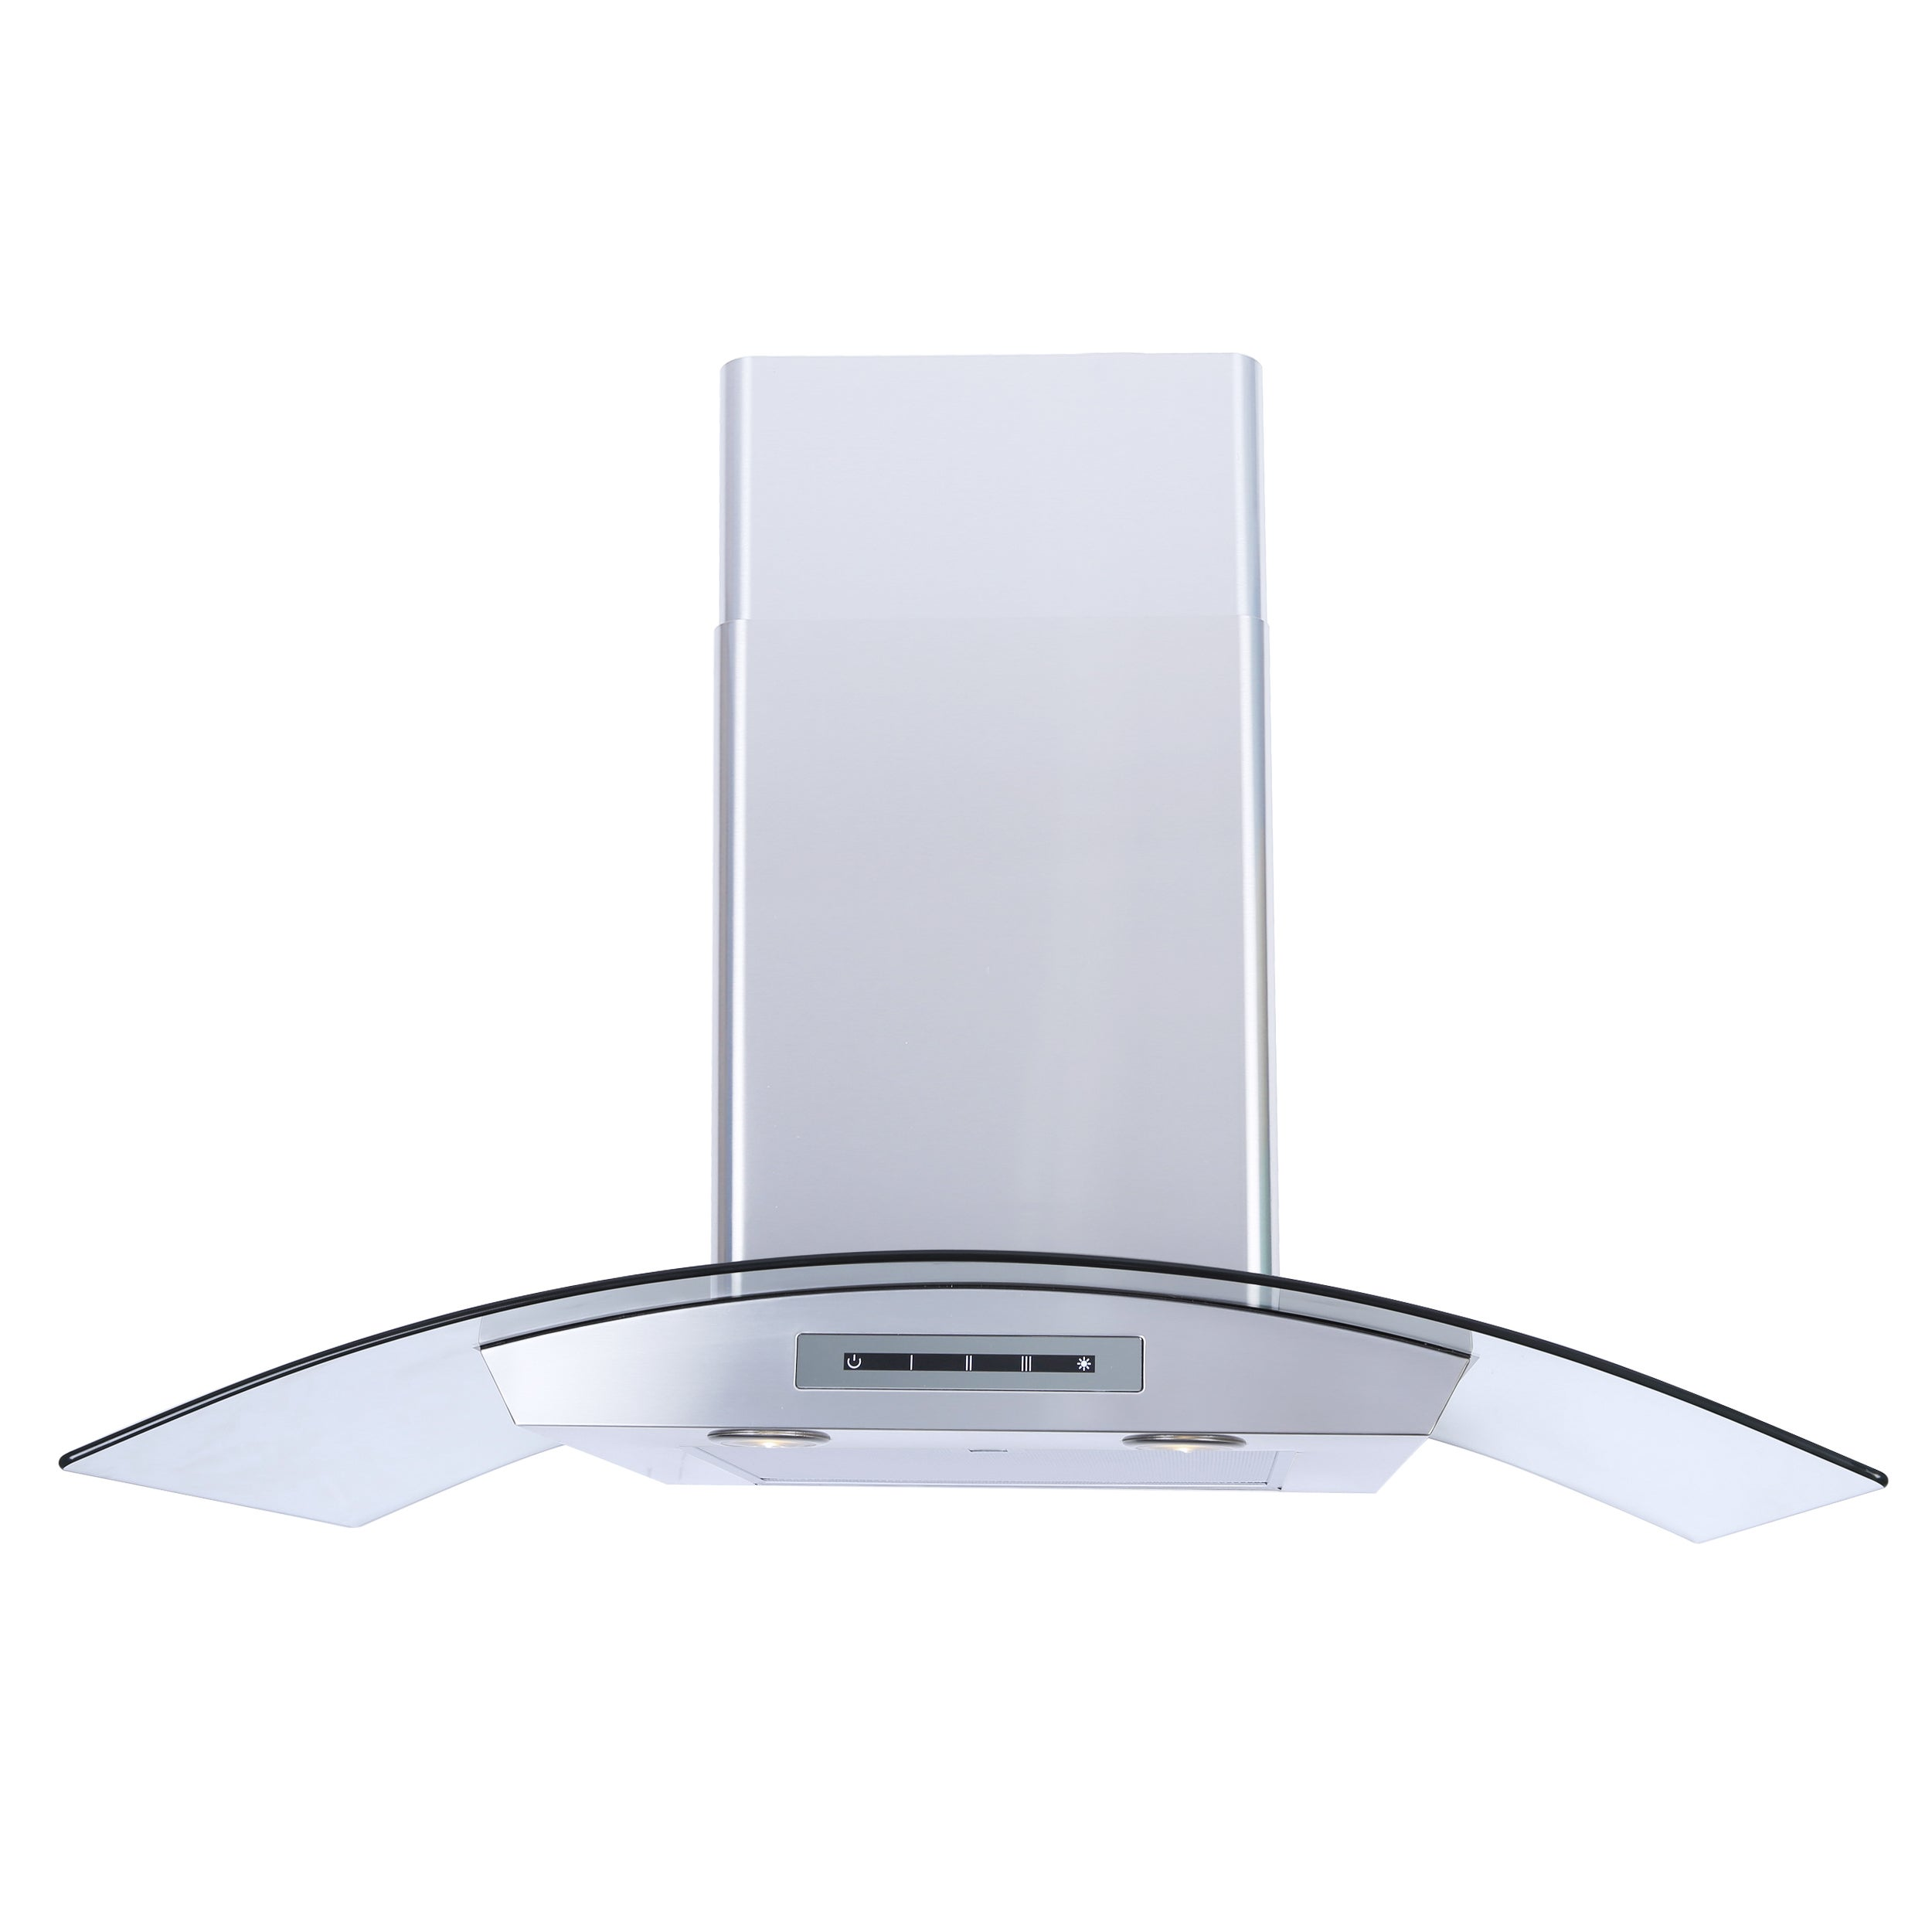 Windster WS-62N Series Wall Mount Tempered Glass Canopy R...